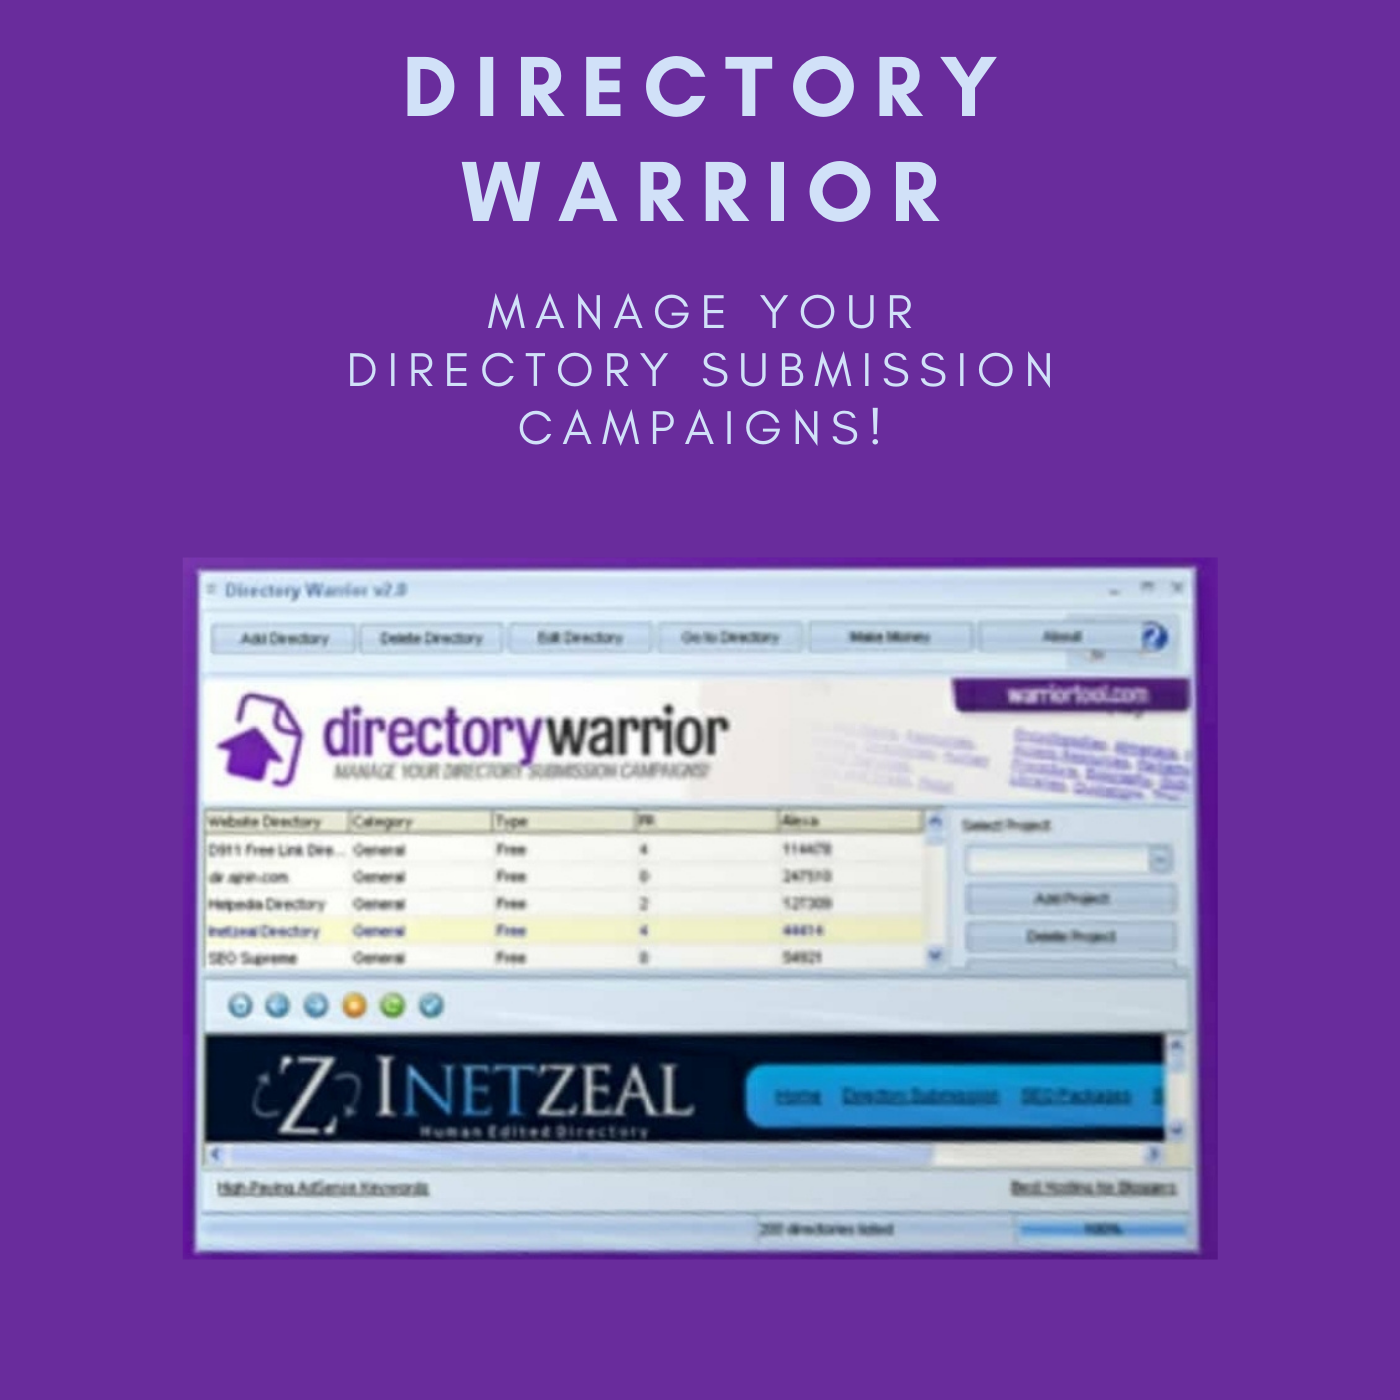 Directory Warrior software for managing directory campaign